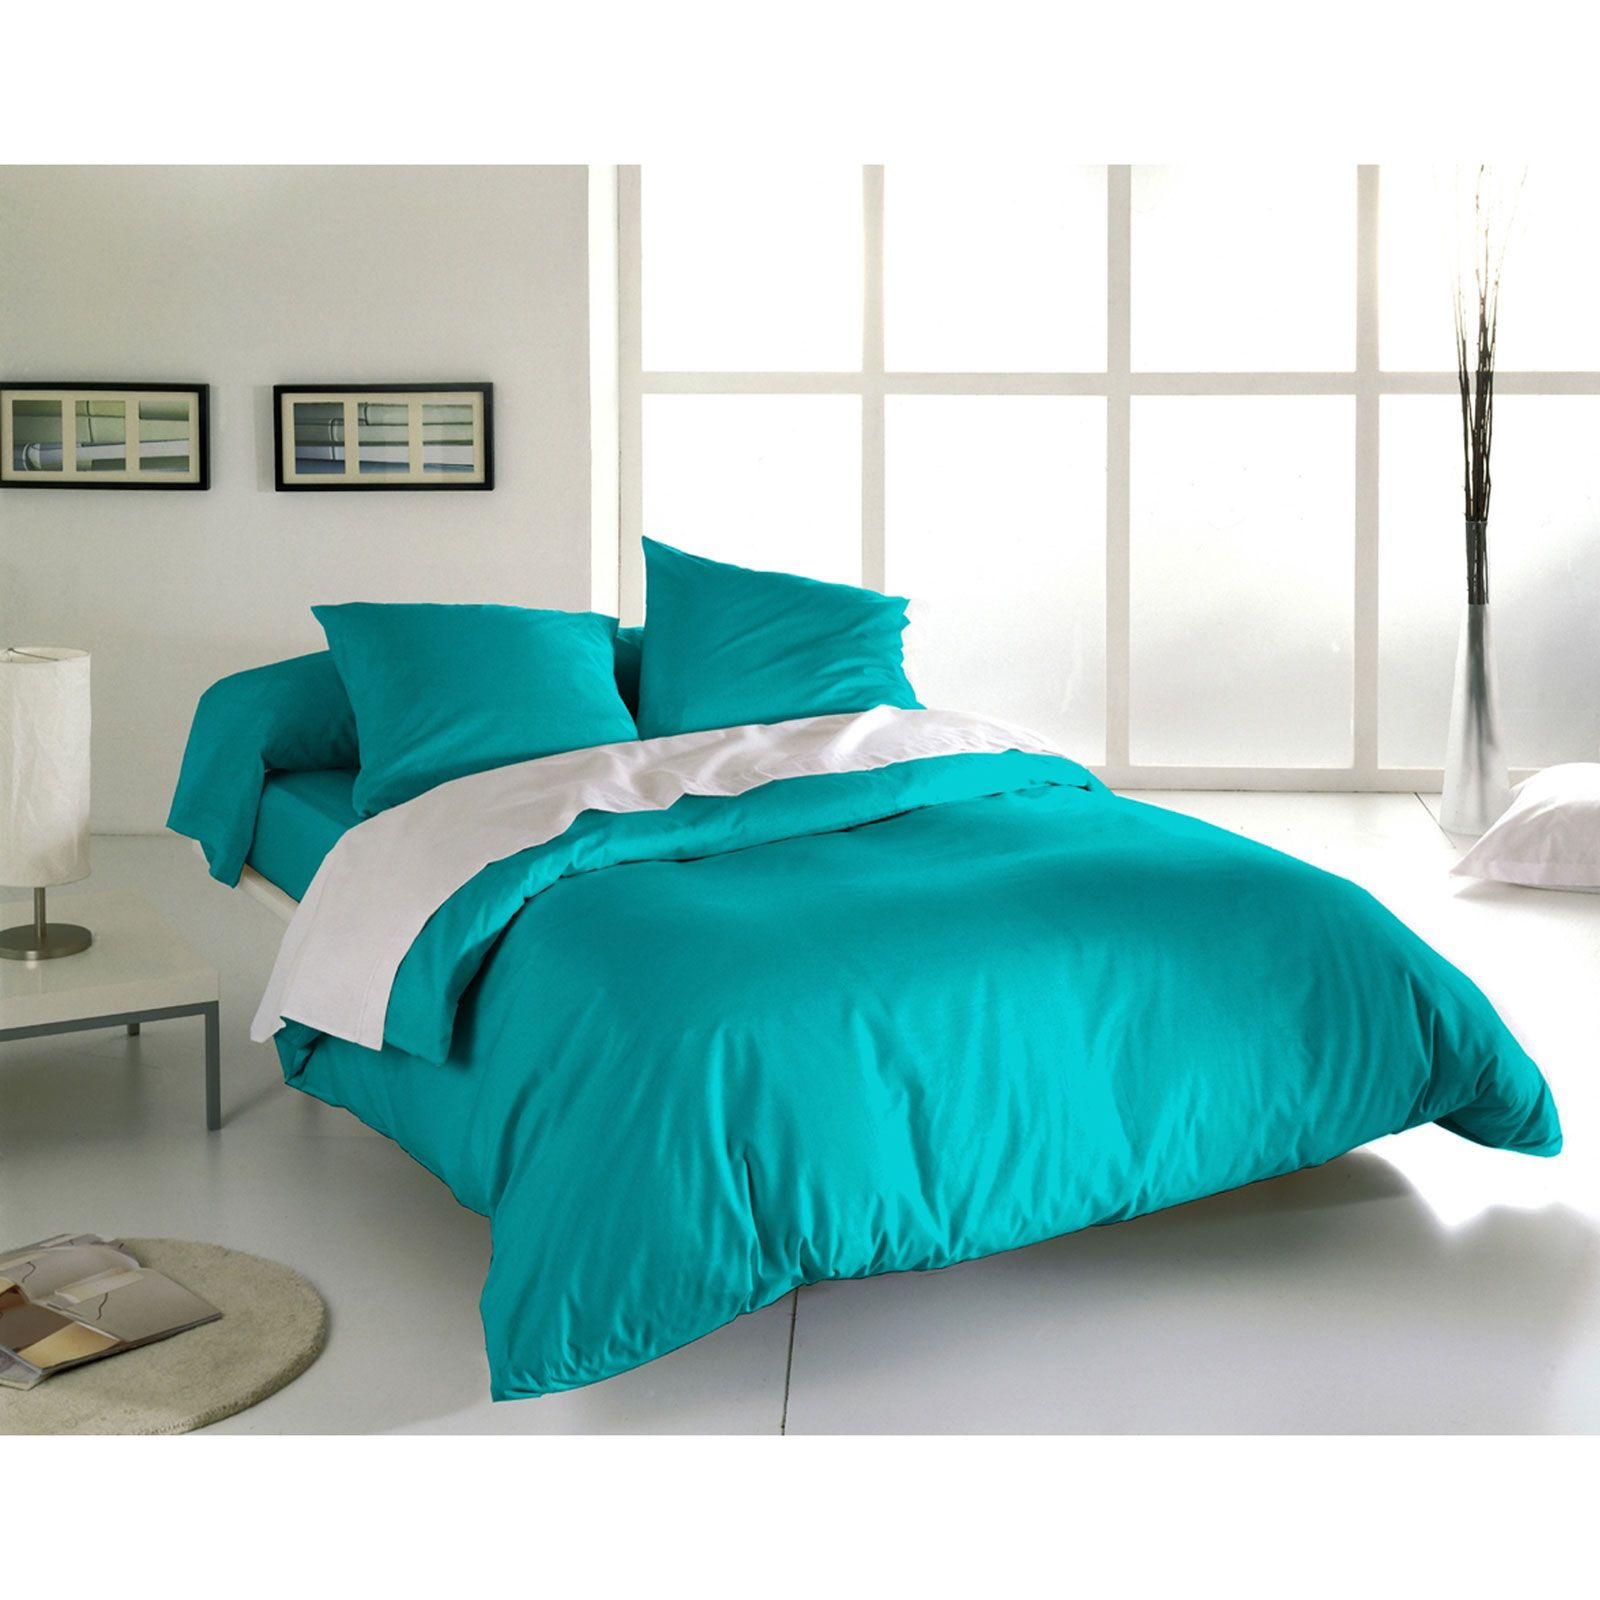 blanc d agate ensemble housse de couette et taies turquoise brandalley. Black Bedroom Furniture Sets. Home Design Ideas